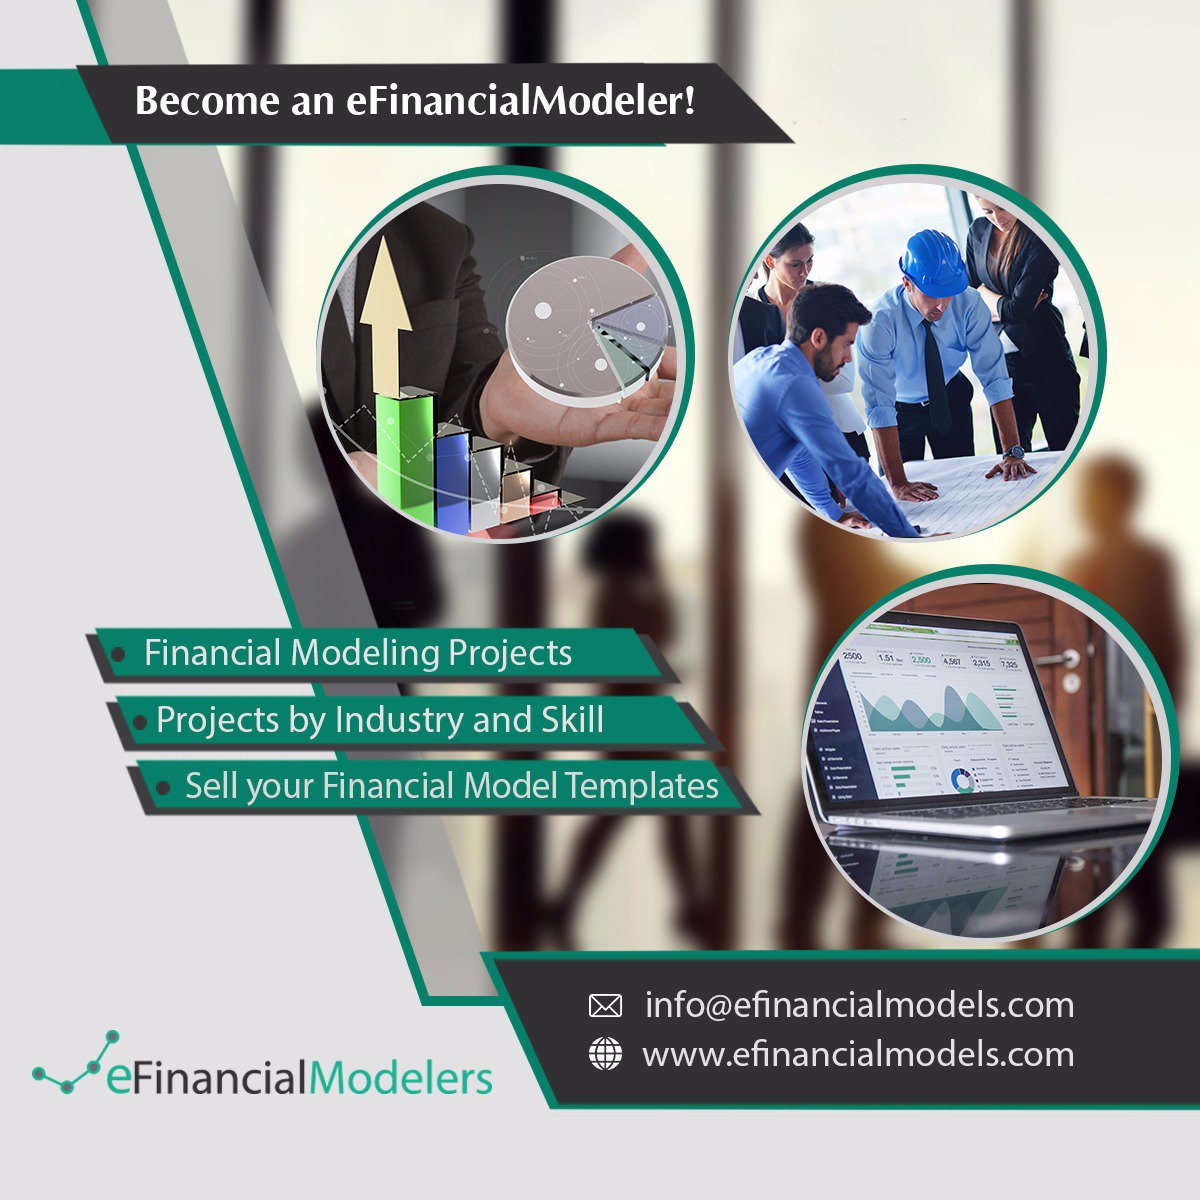 The Freelancer platform for financial modeling experts #expert #freelancer #modeling #excel #plan  http:// bit.ly/2mdFLyD  &nbsp;  <br>http://pic.twitter.com/QmigMJuEWh